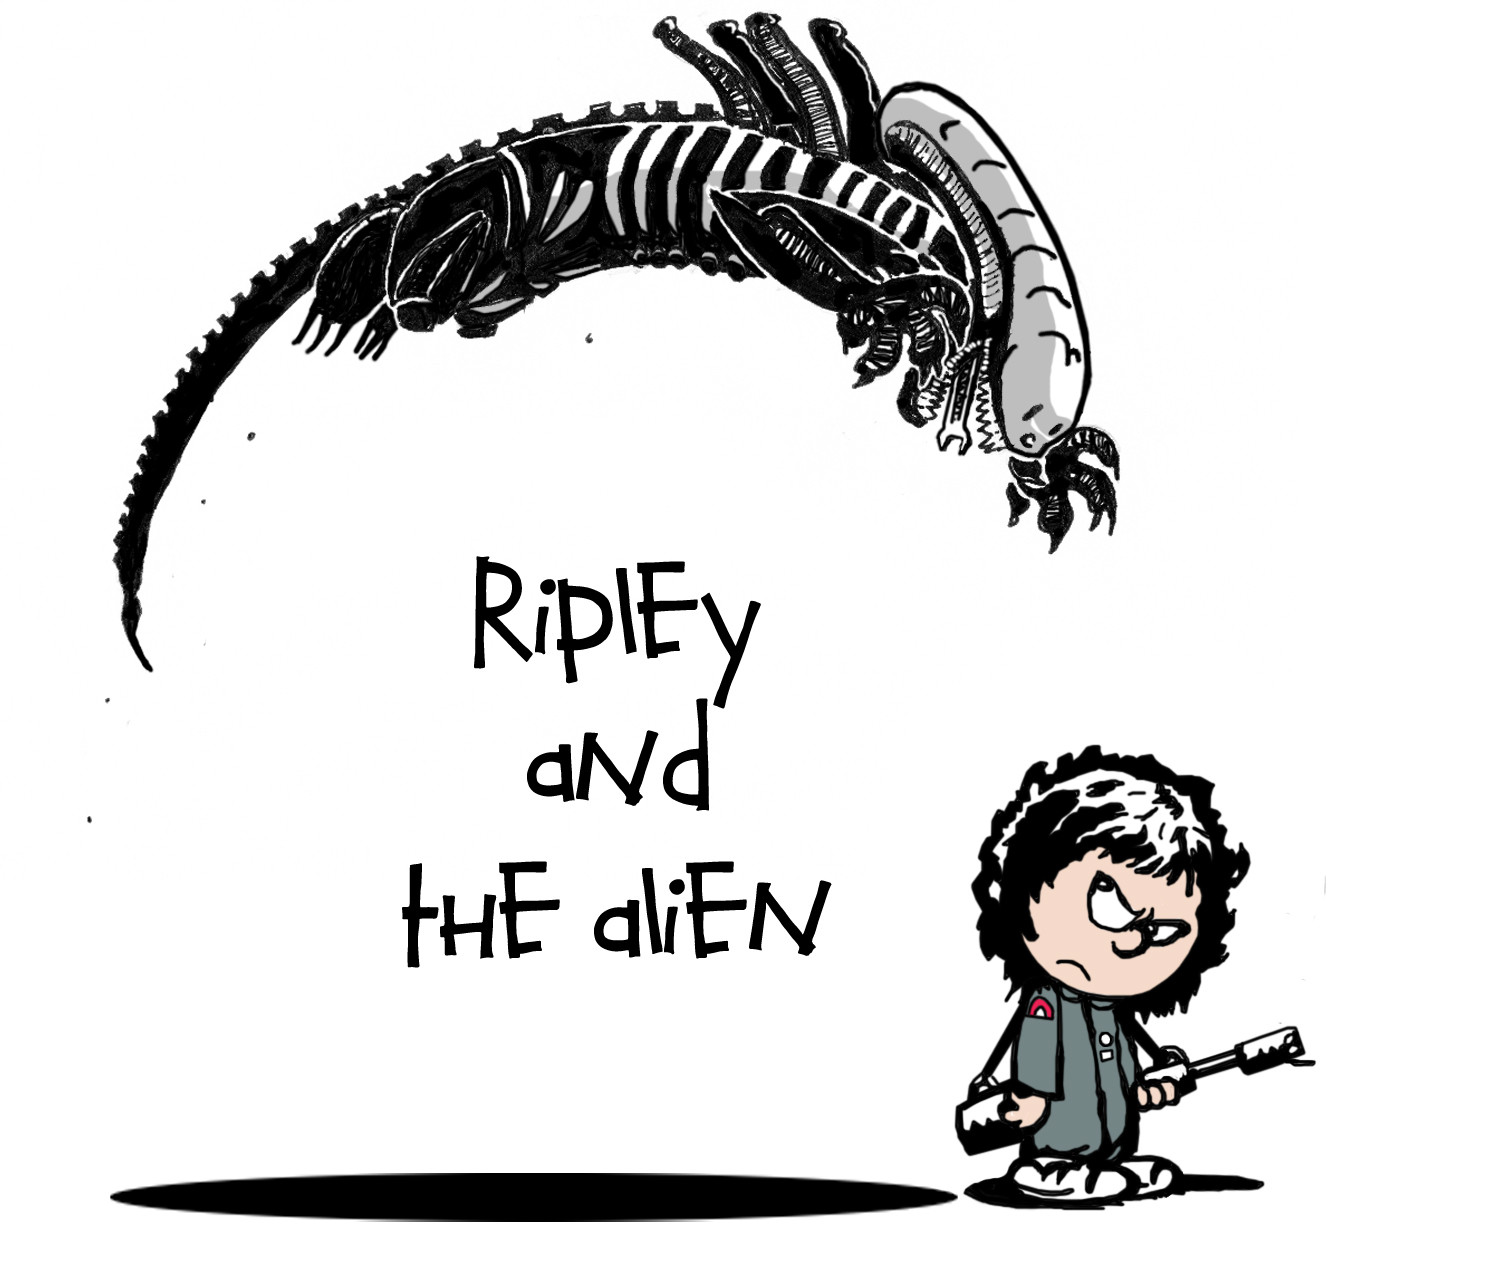 1512x1275 My Drawing Of Ripley And The Alien Done In A Calvin And Hobbes